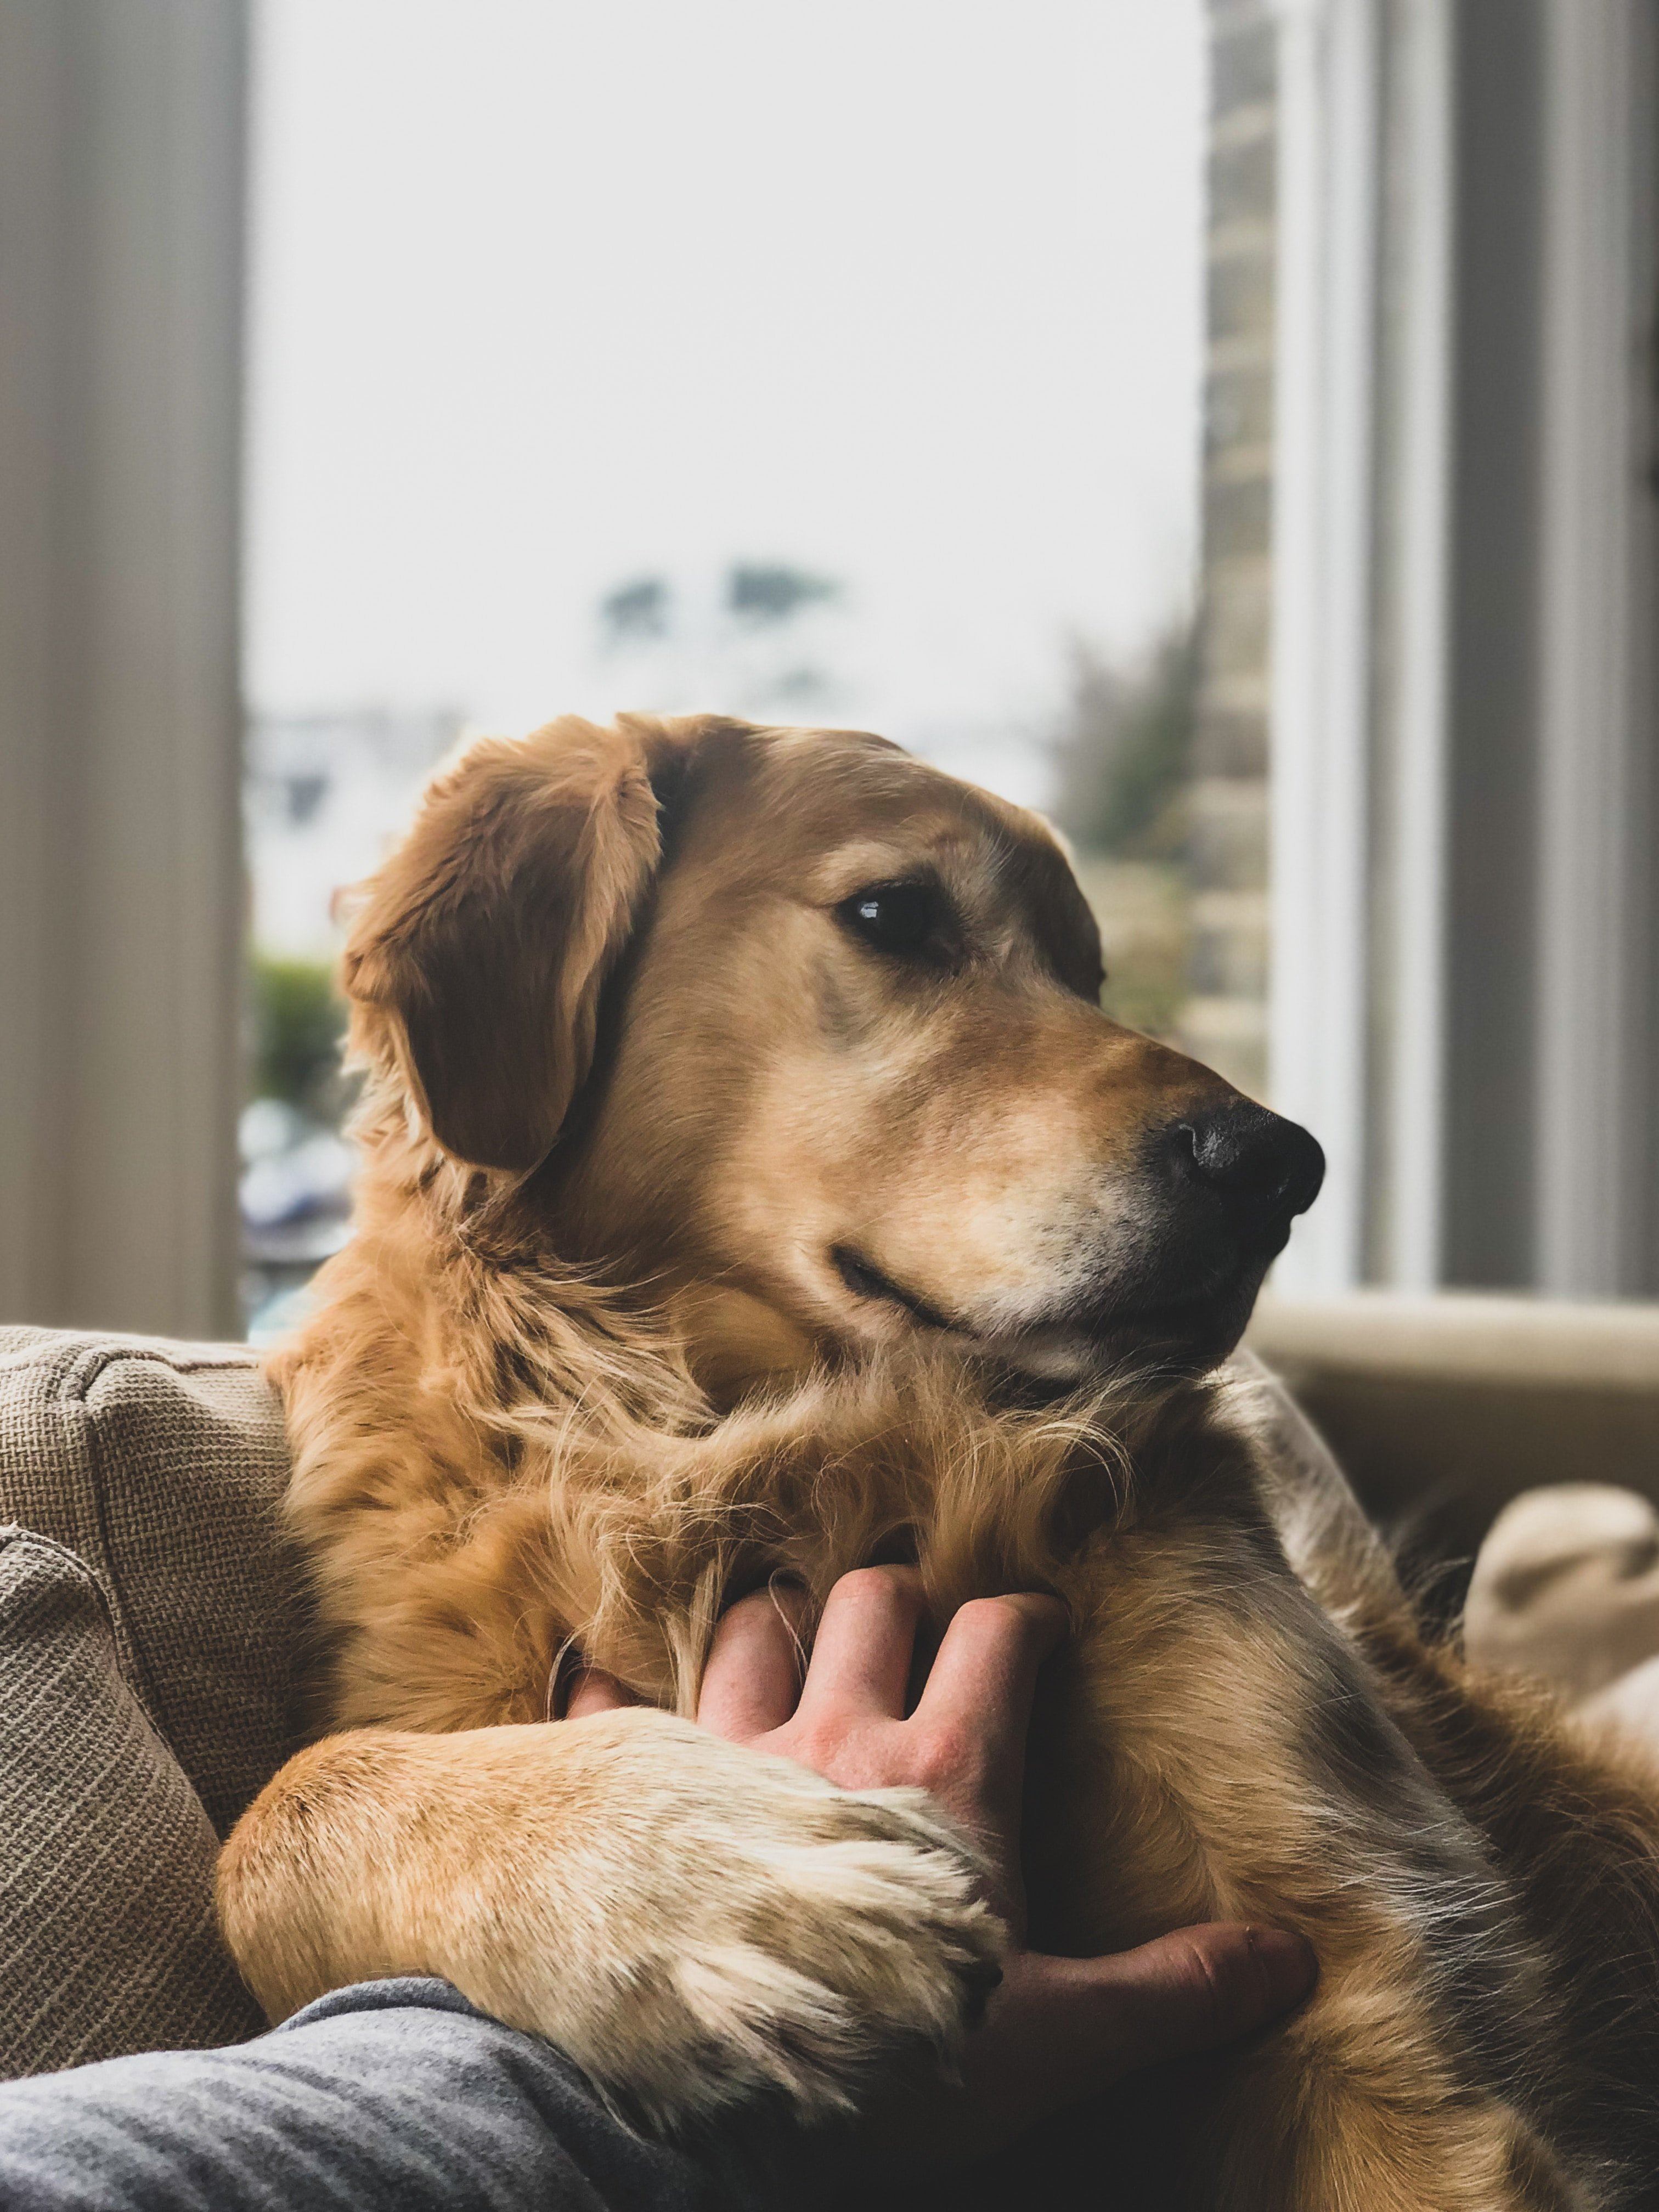 A dog sitting on the sofa indoors. | Source: Unsplash